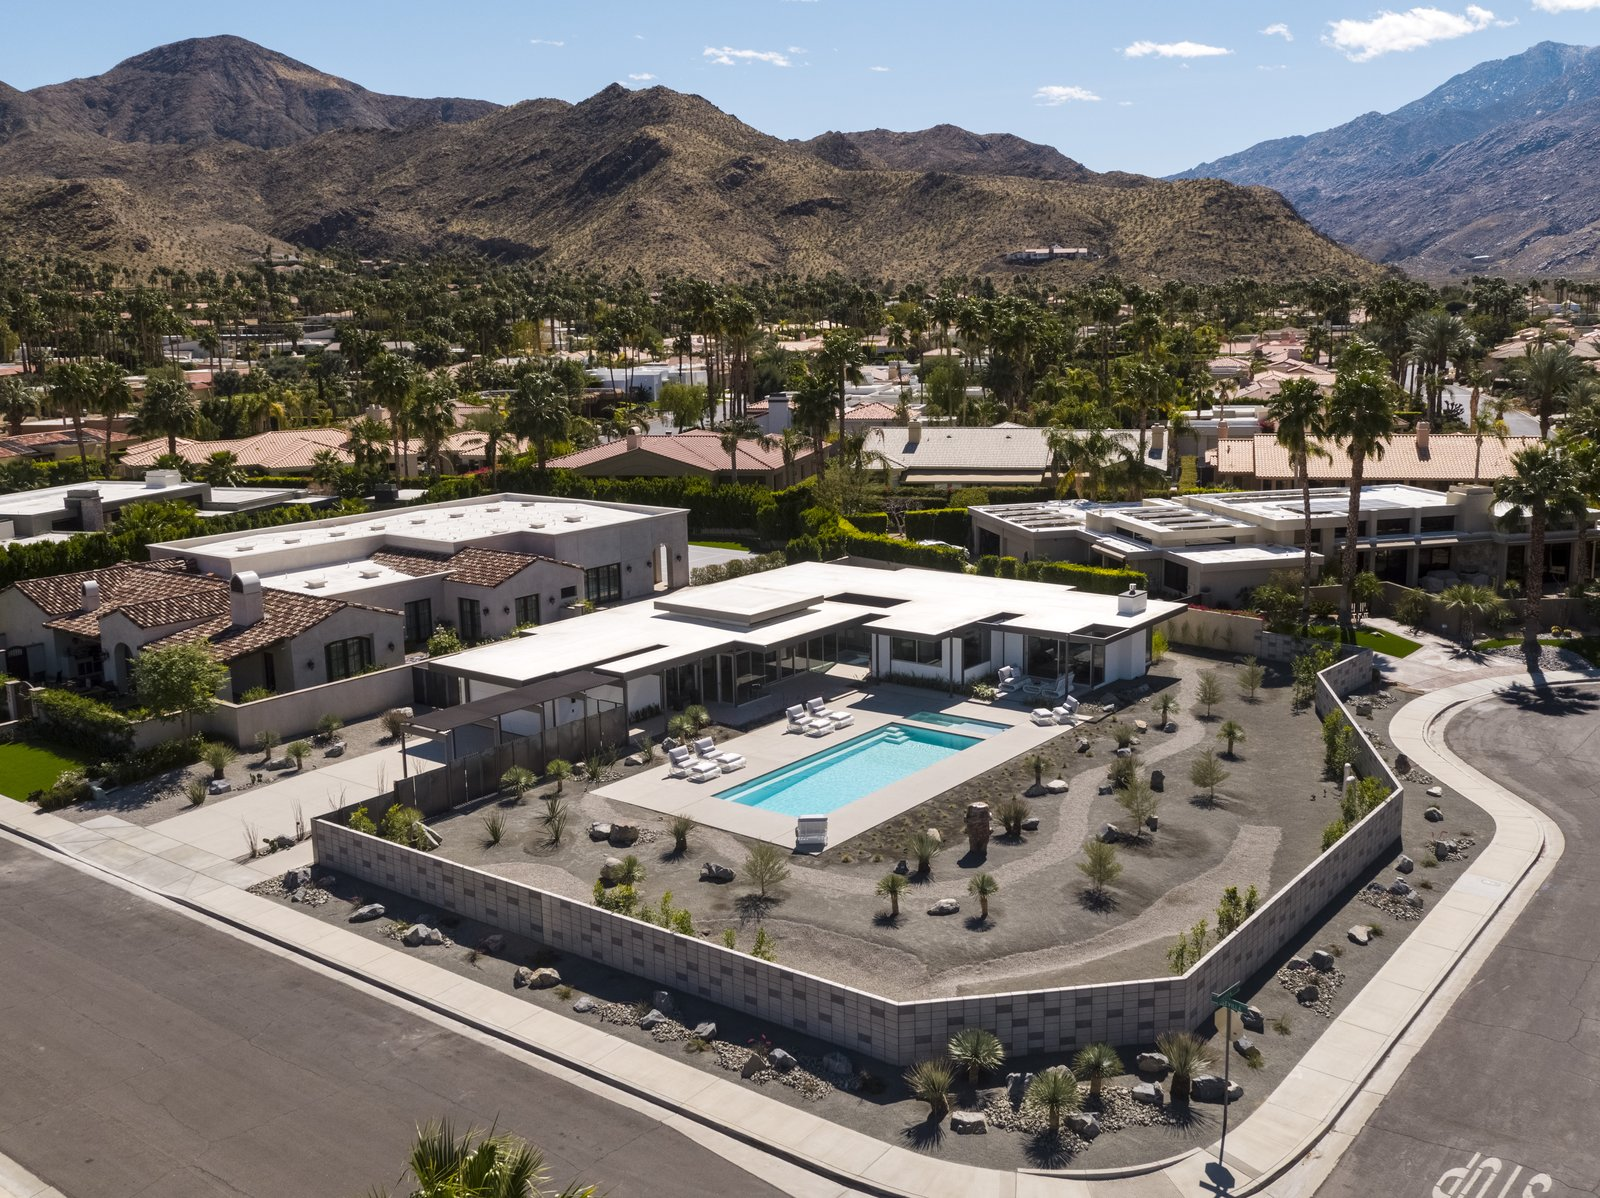 The low lying, horizontal residence sits idyllically at the foothills  of  the Indian Canyons in Palm Springs.